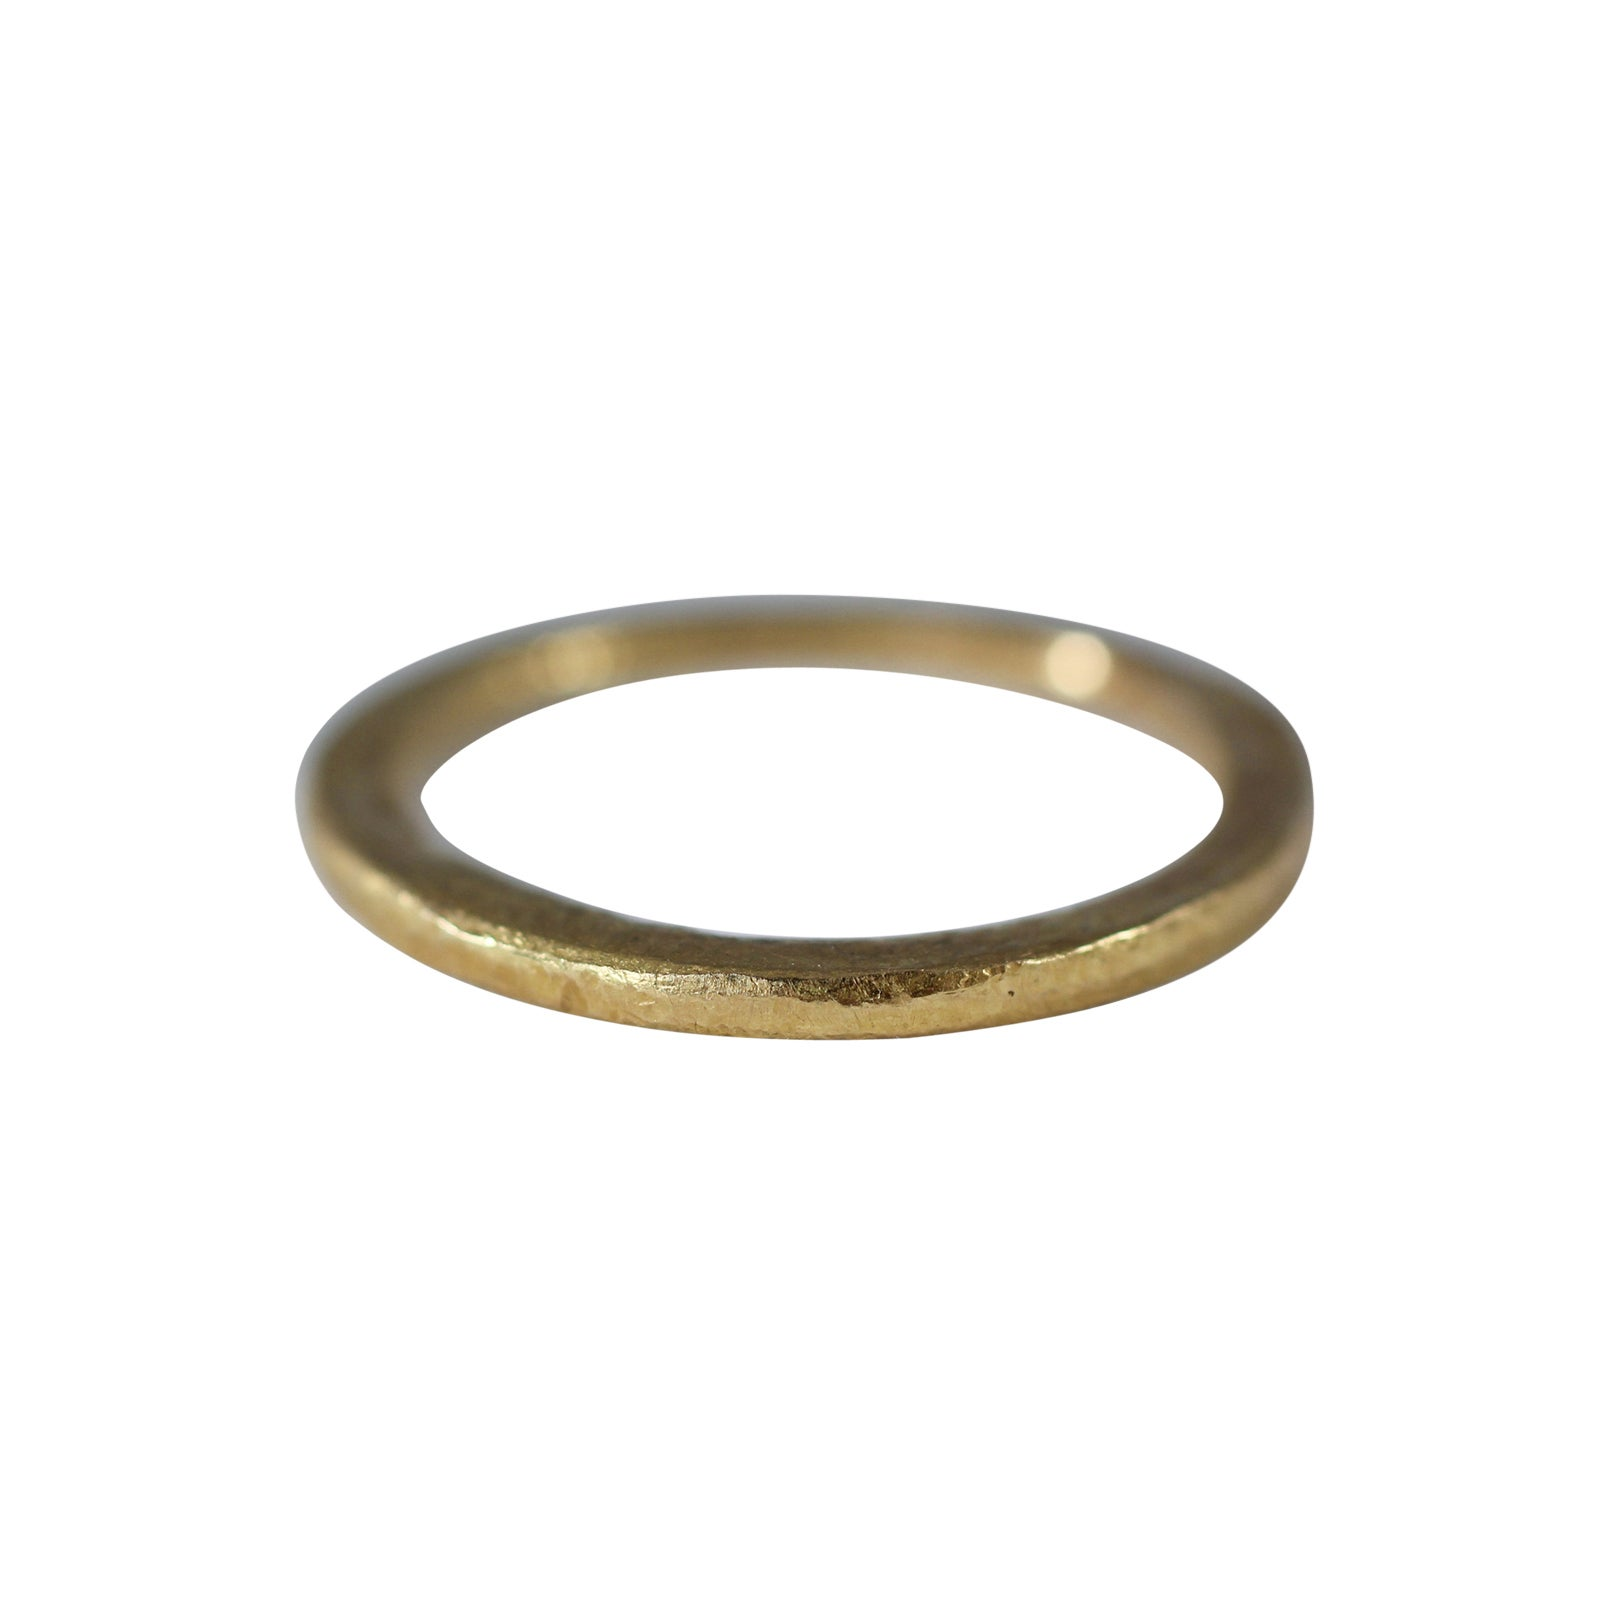 22 Karat Gold Wedding Band Ring Unisex Stacking Disk Design by AB Jewelry NYC